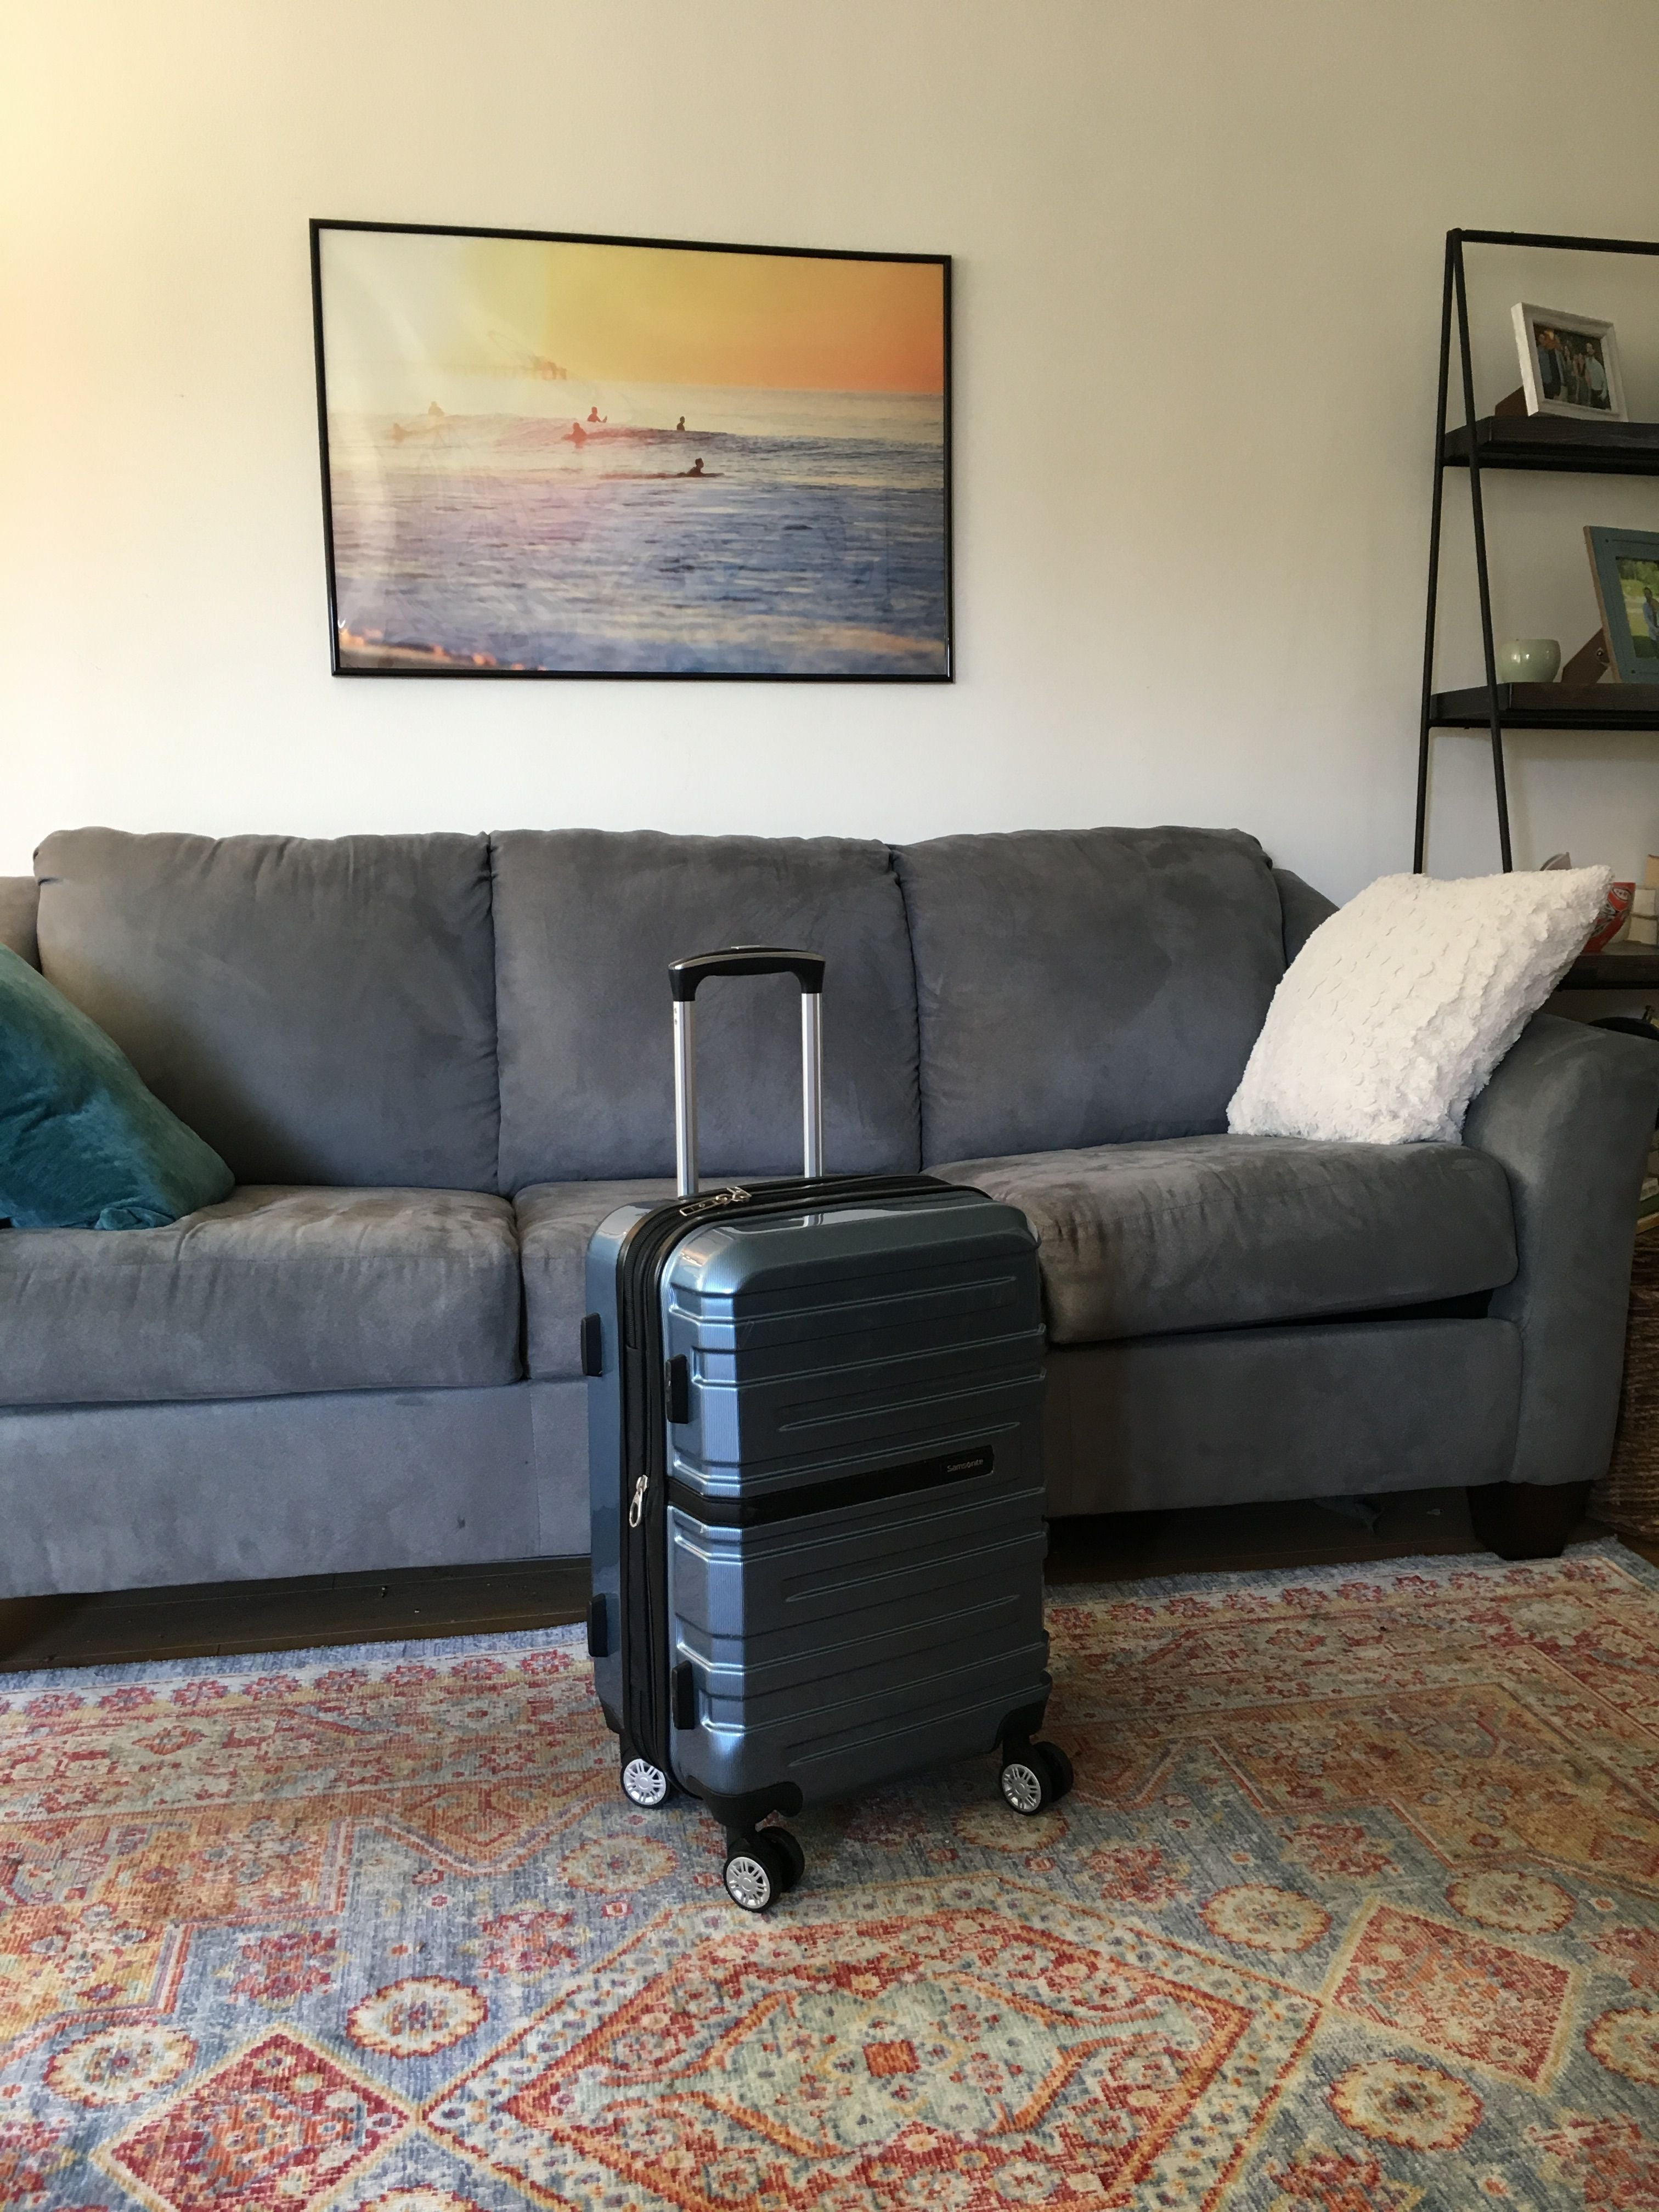 Hard-shell suitcase for travel